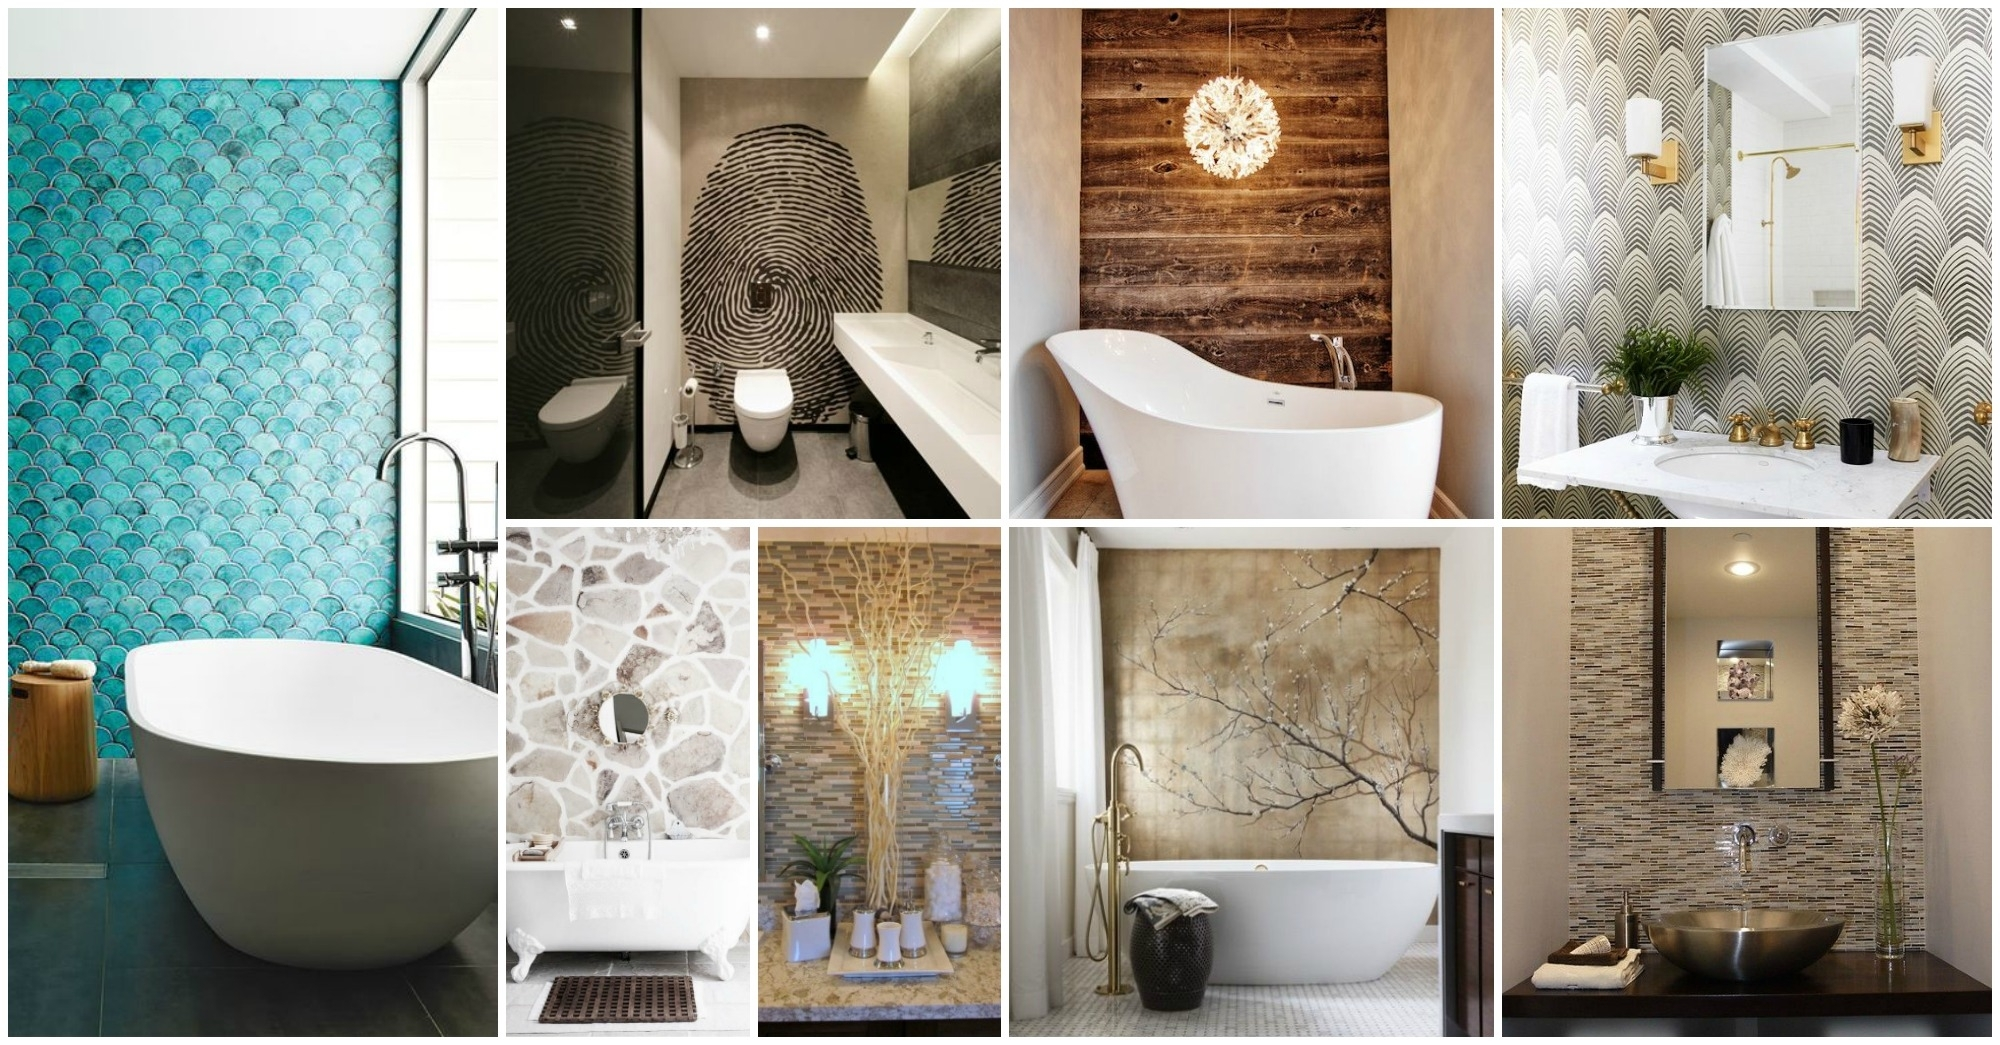 Wonderful 23 Bathroom With Accent Wall On Decorative Accents For Regarding Recent Wall Accents For Bathroom (View 6 of 15)